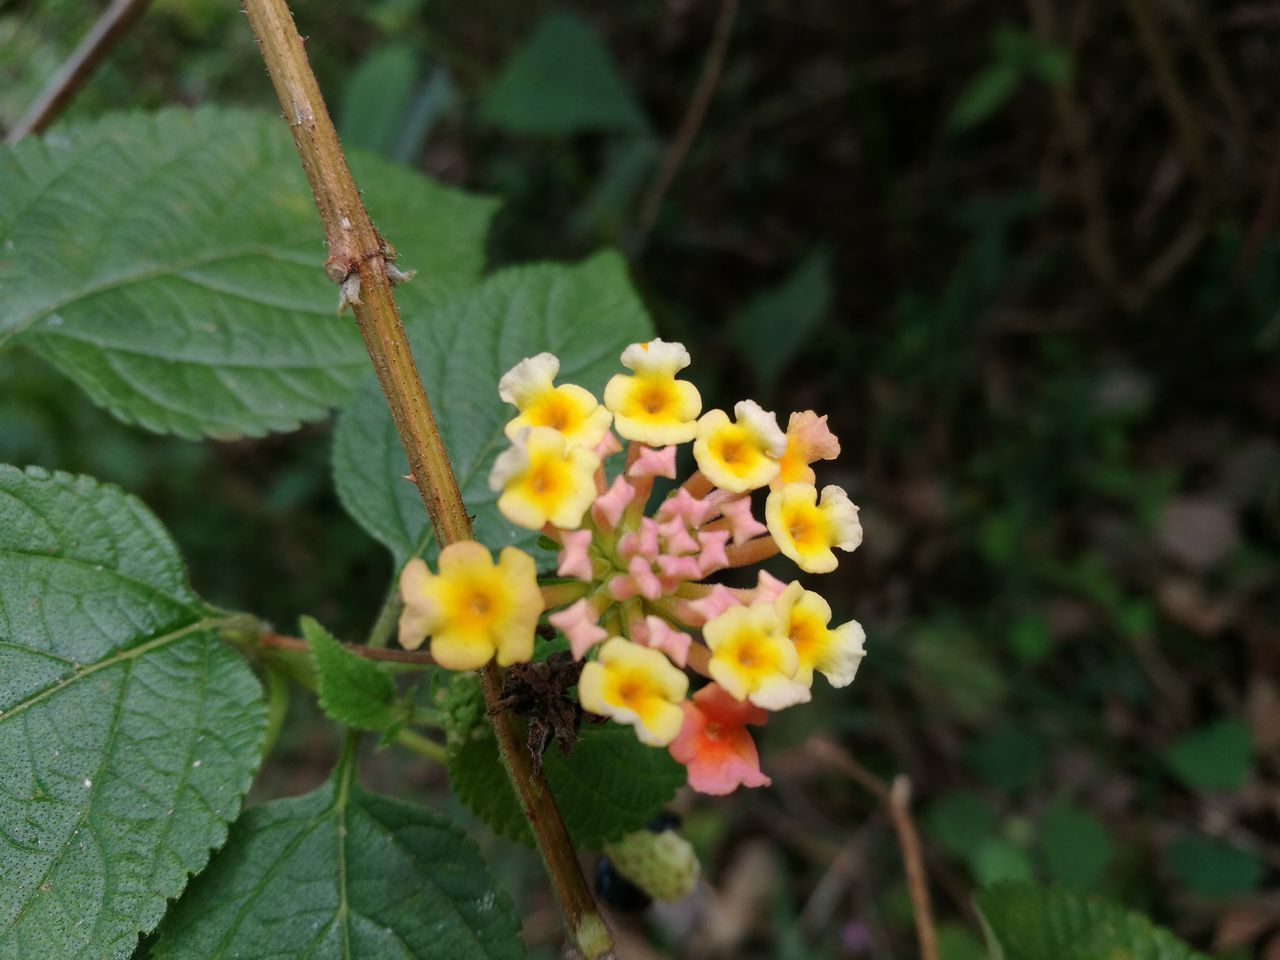 plant, growth, leaf, flower, nature, fragility, beauty in nature, freshness, petal, lantana camara, green color, close-up, day, outdoors, flower head, no people, blooming